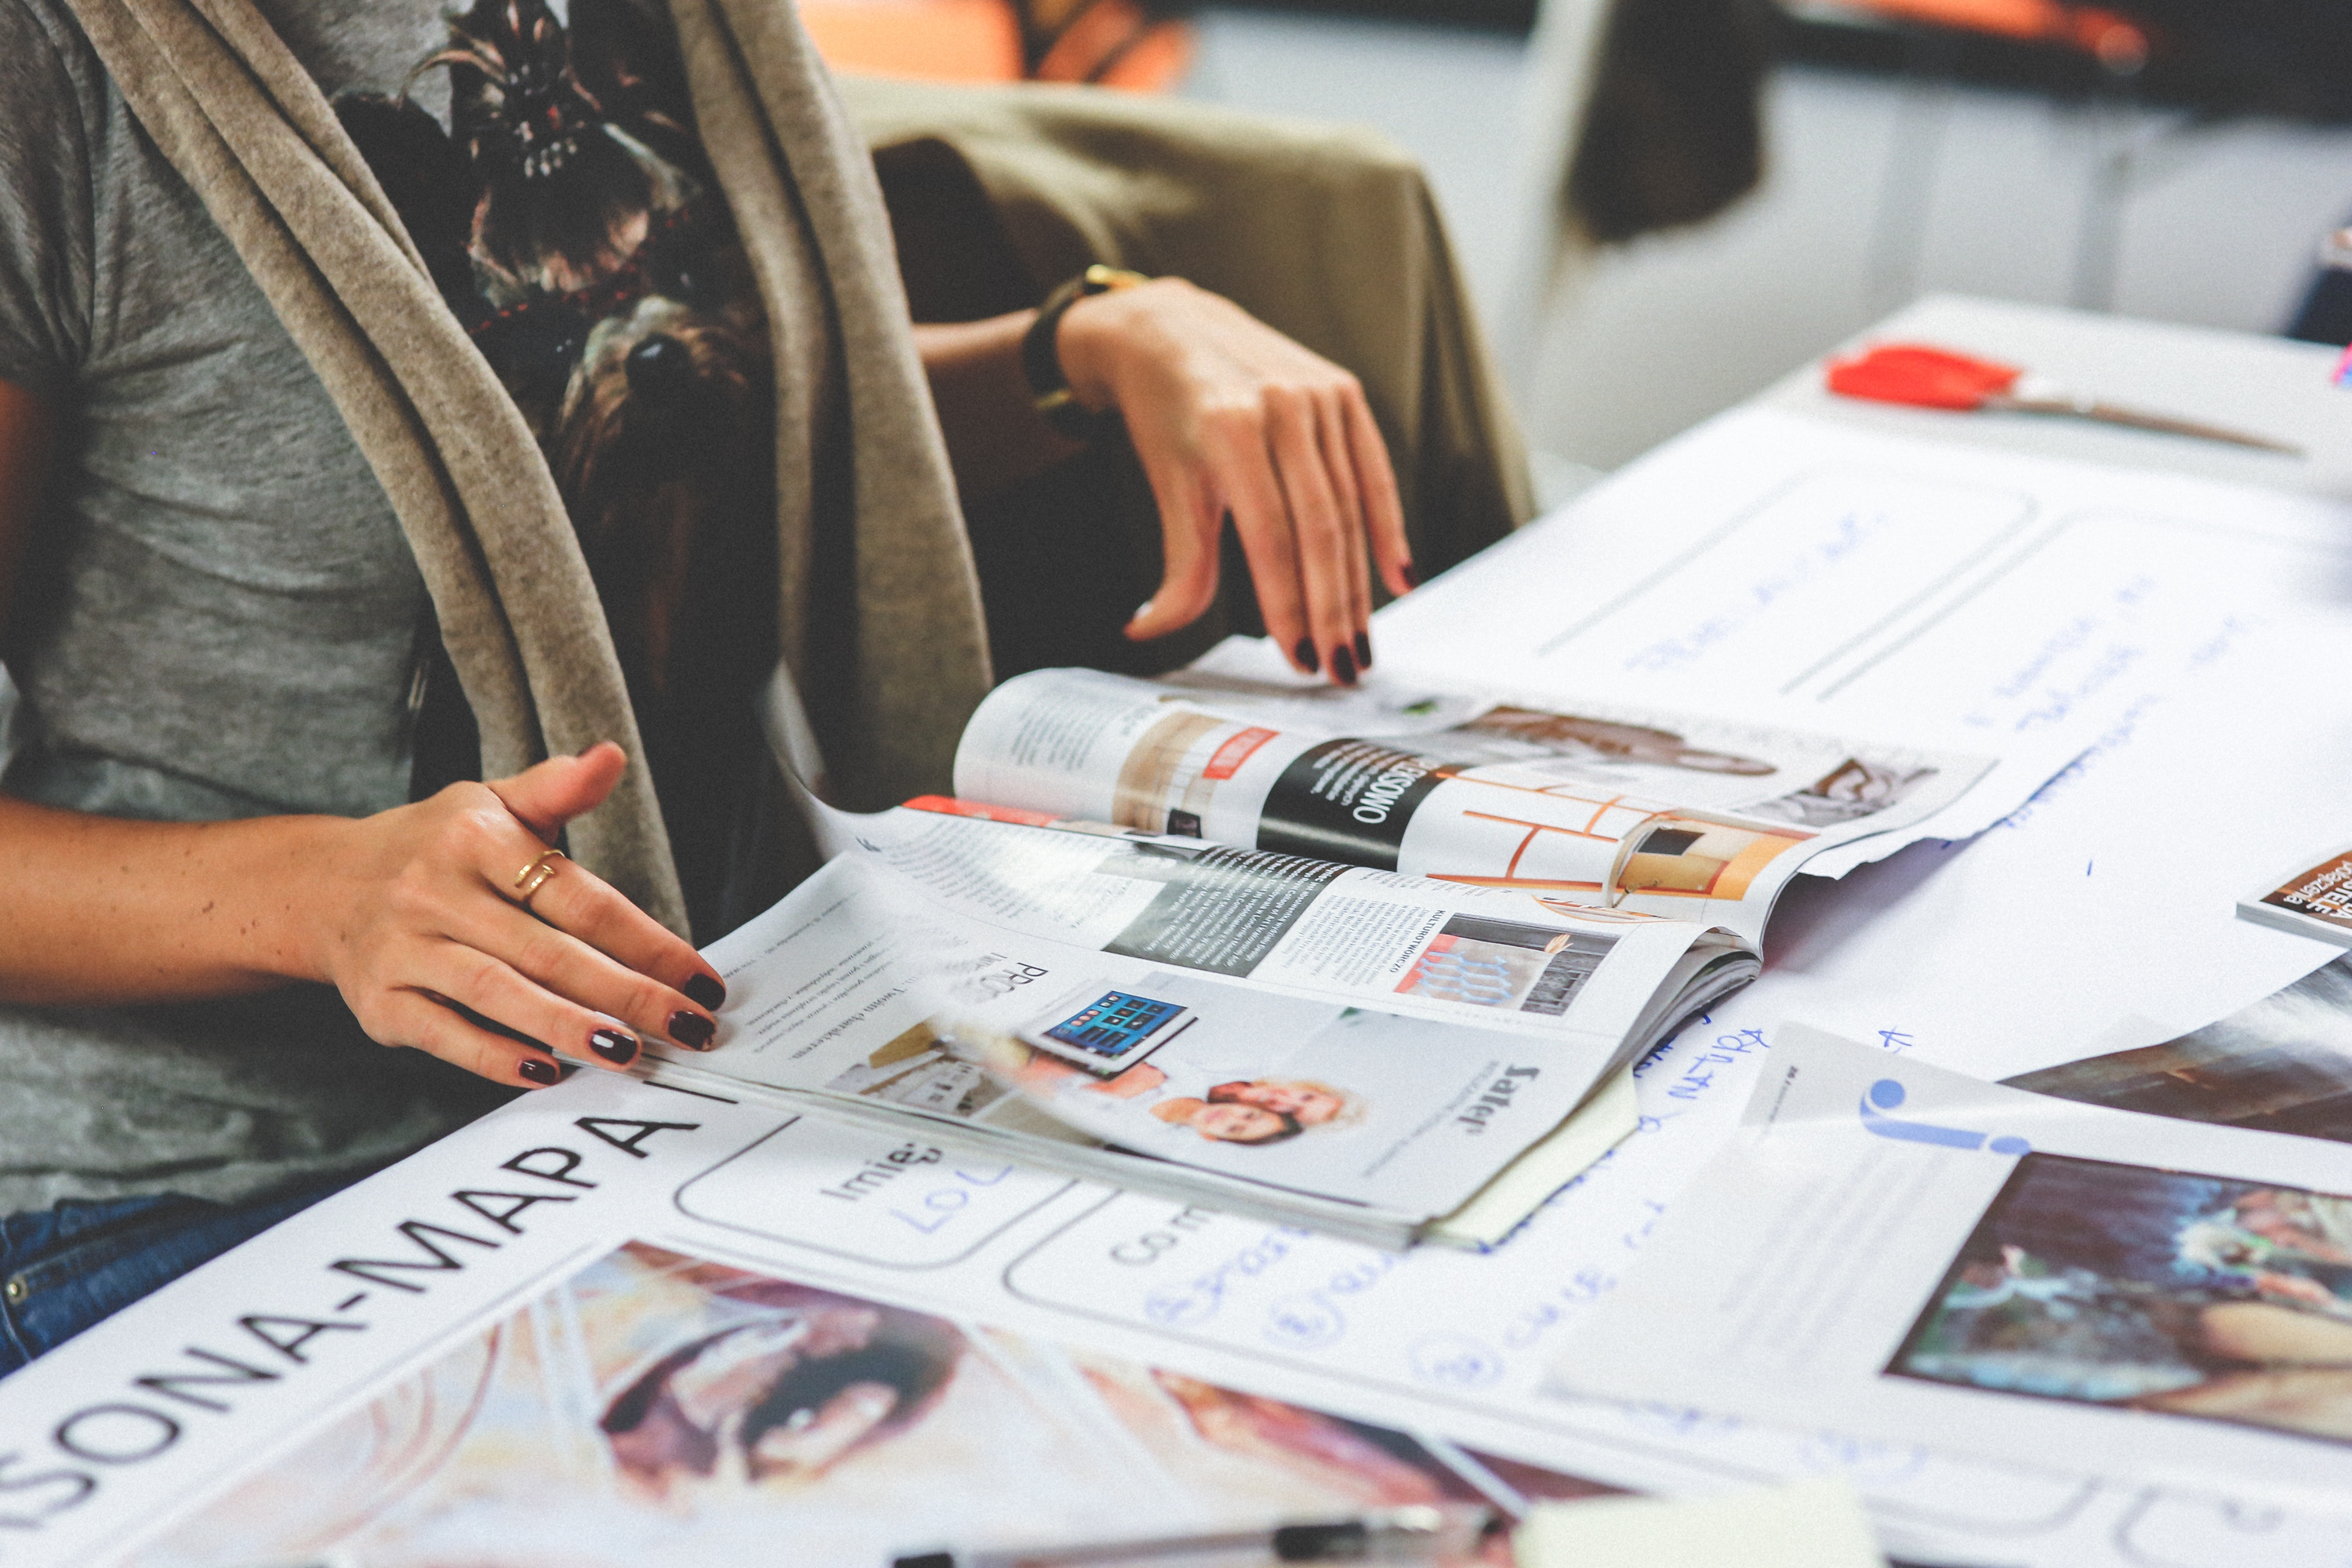 Press Kit 101: What to include to get earned media coverage, with examples